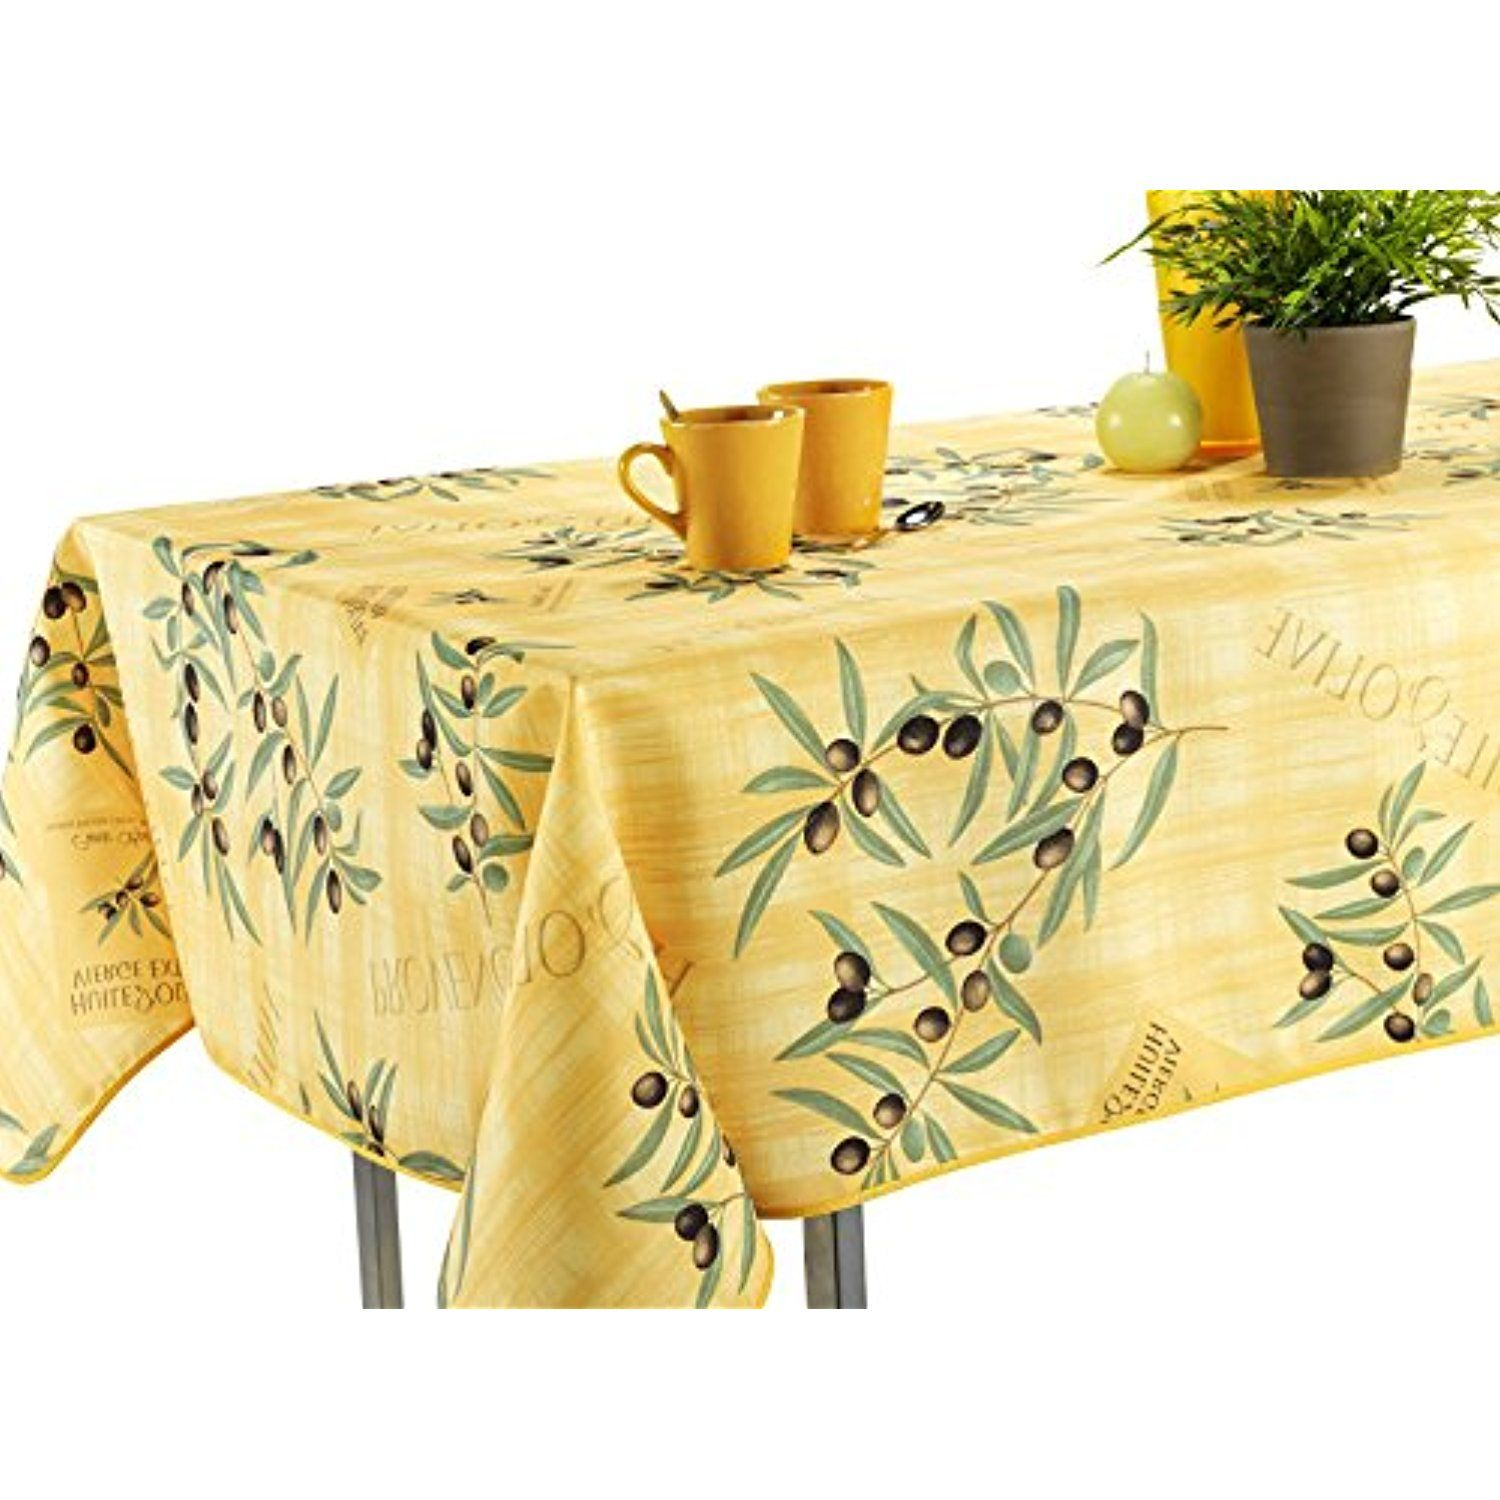 Tablecloth Yellow Olive Branch Stain Resistant Washable Liquid Spills Bead Up 60 X 95 Oblong V Stain Resistant Tablecloth Table Cloth Round Tablecloth